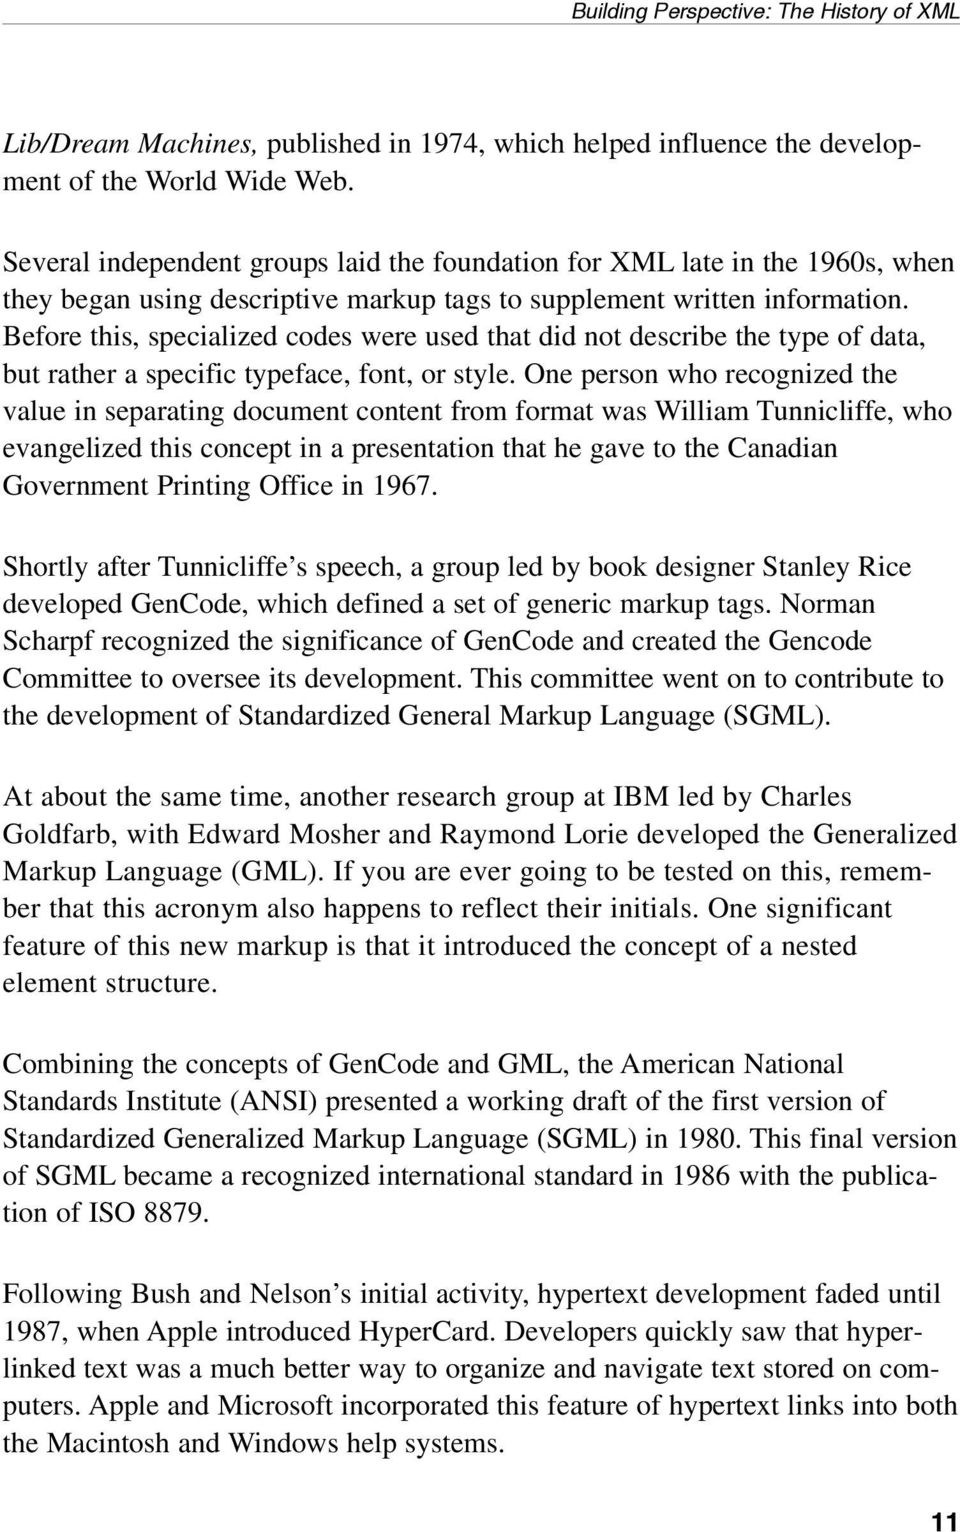 Leveraging the iseries with XML - PDF